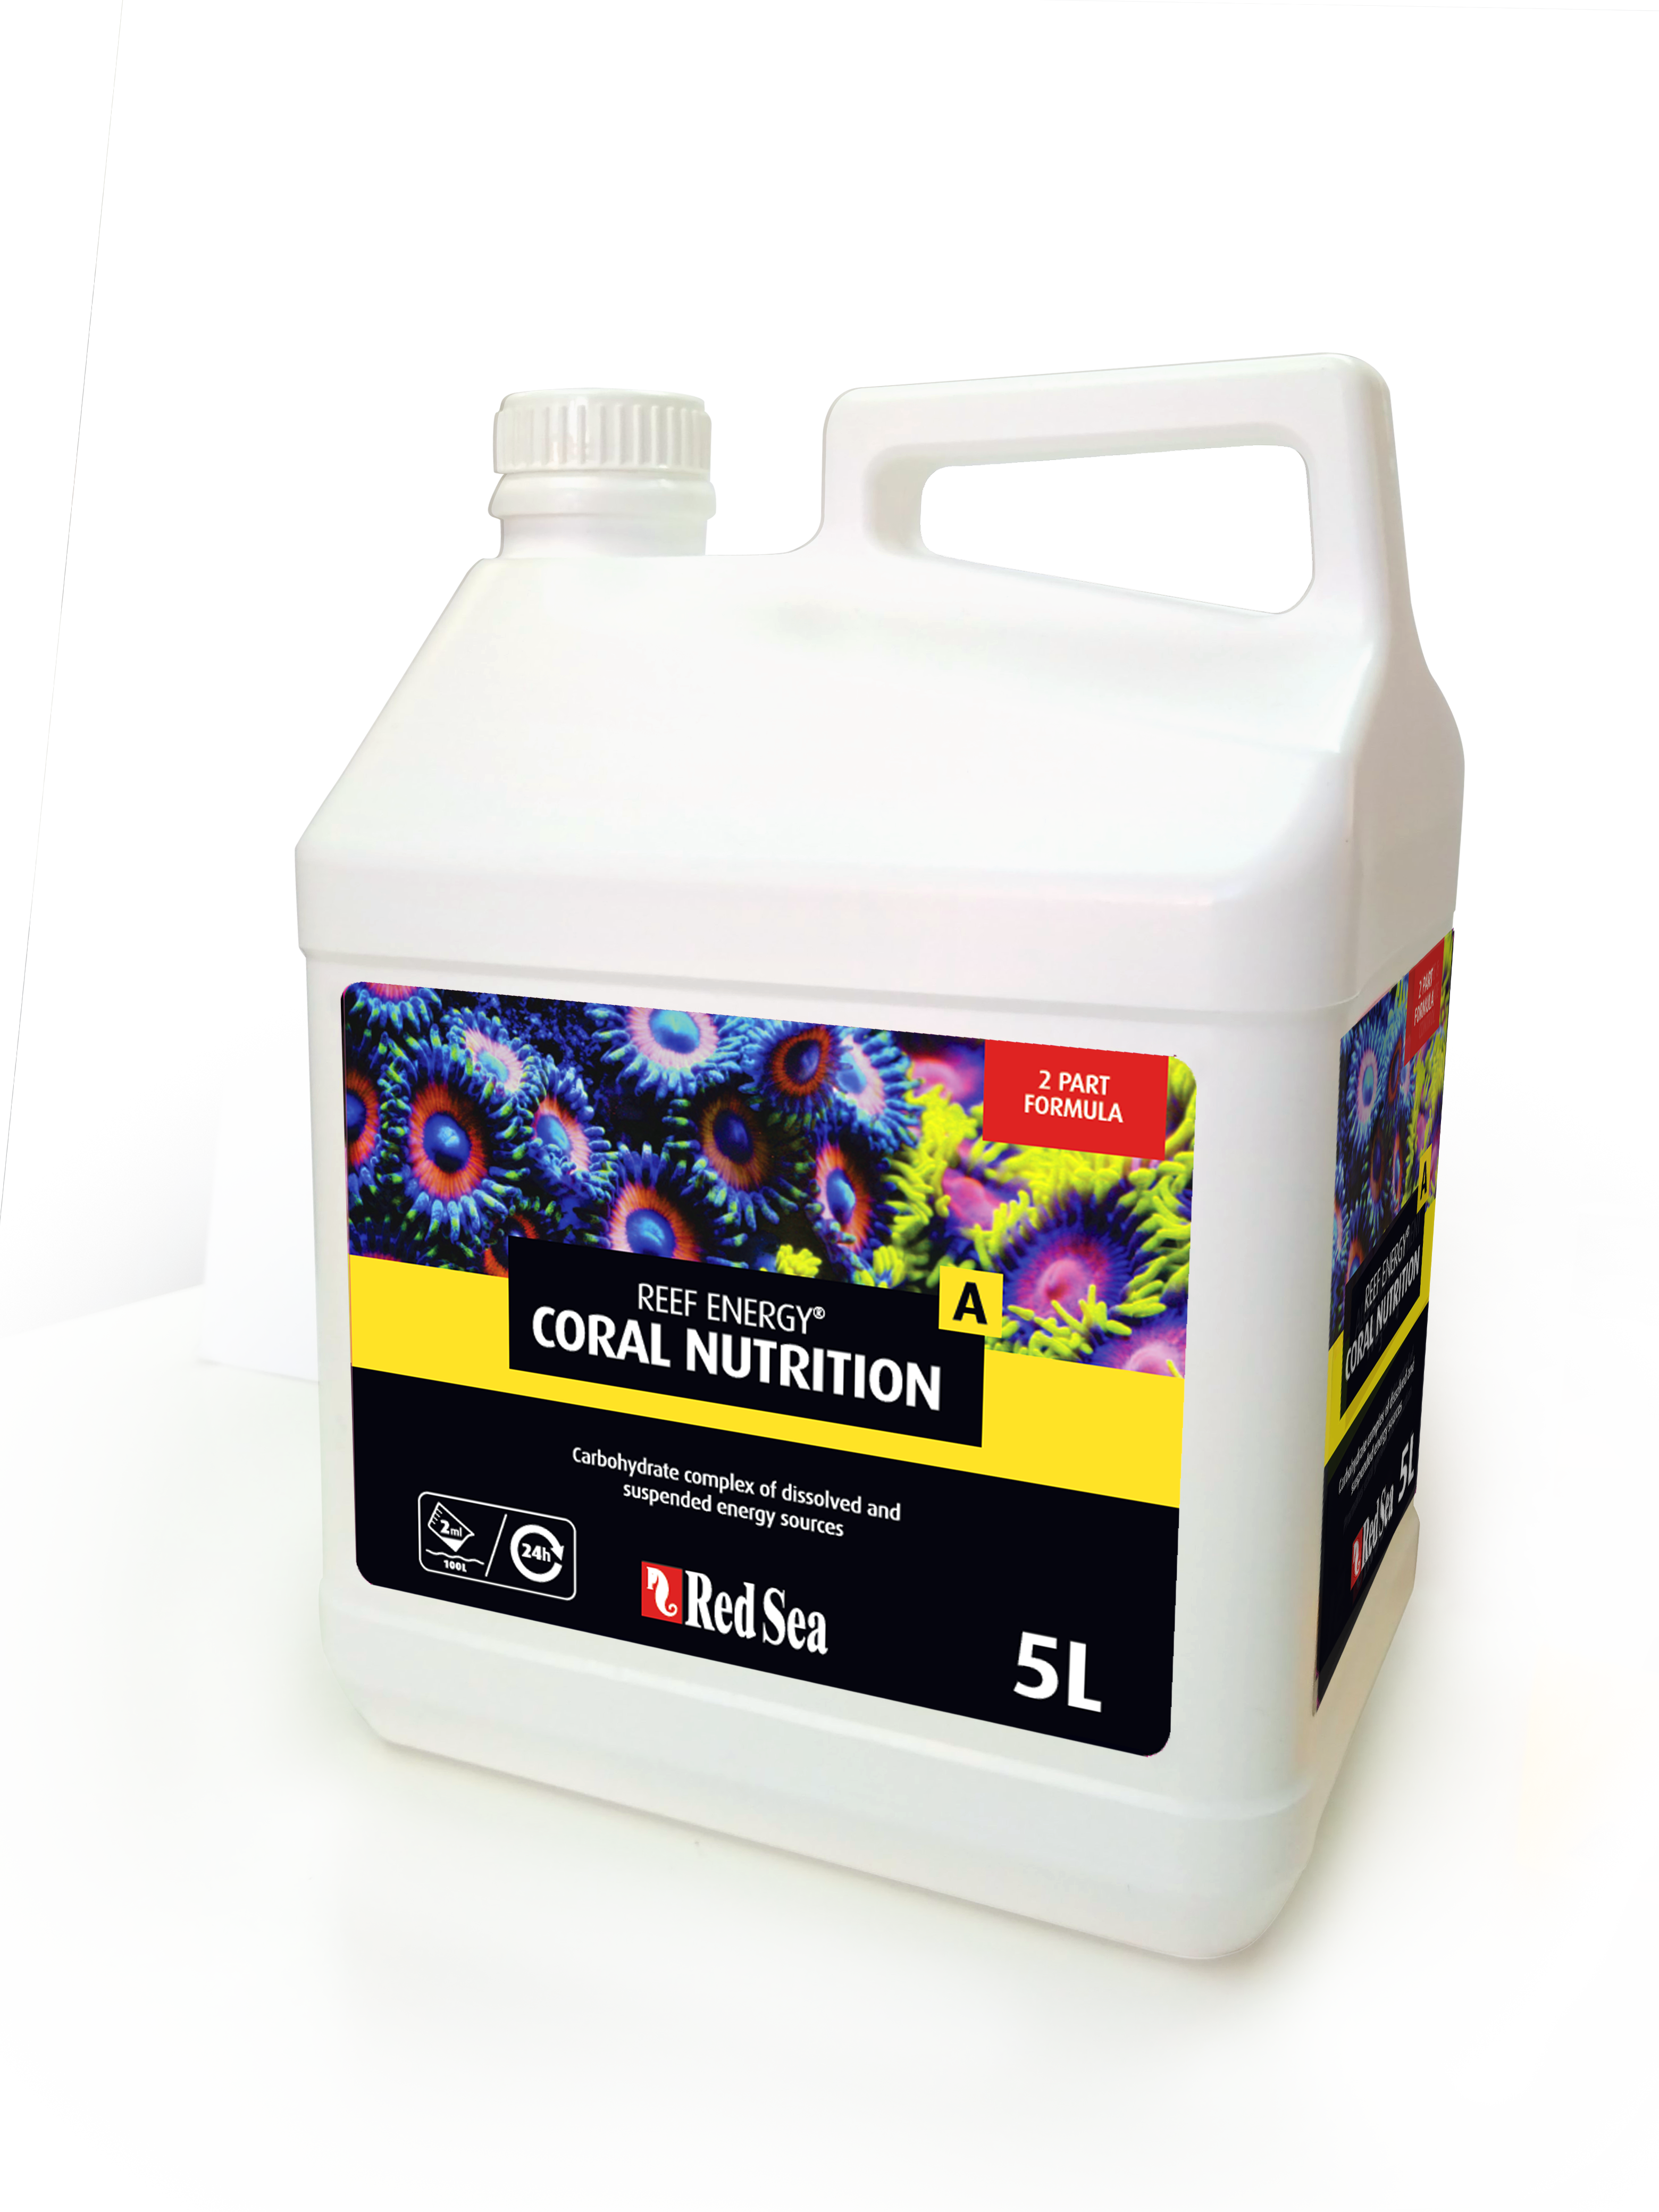 Reef Energy  Coral Nutrition A (Carbs) - 5 Litre